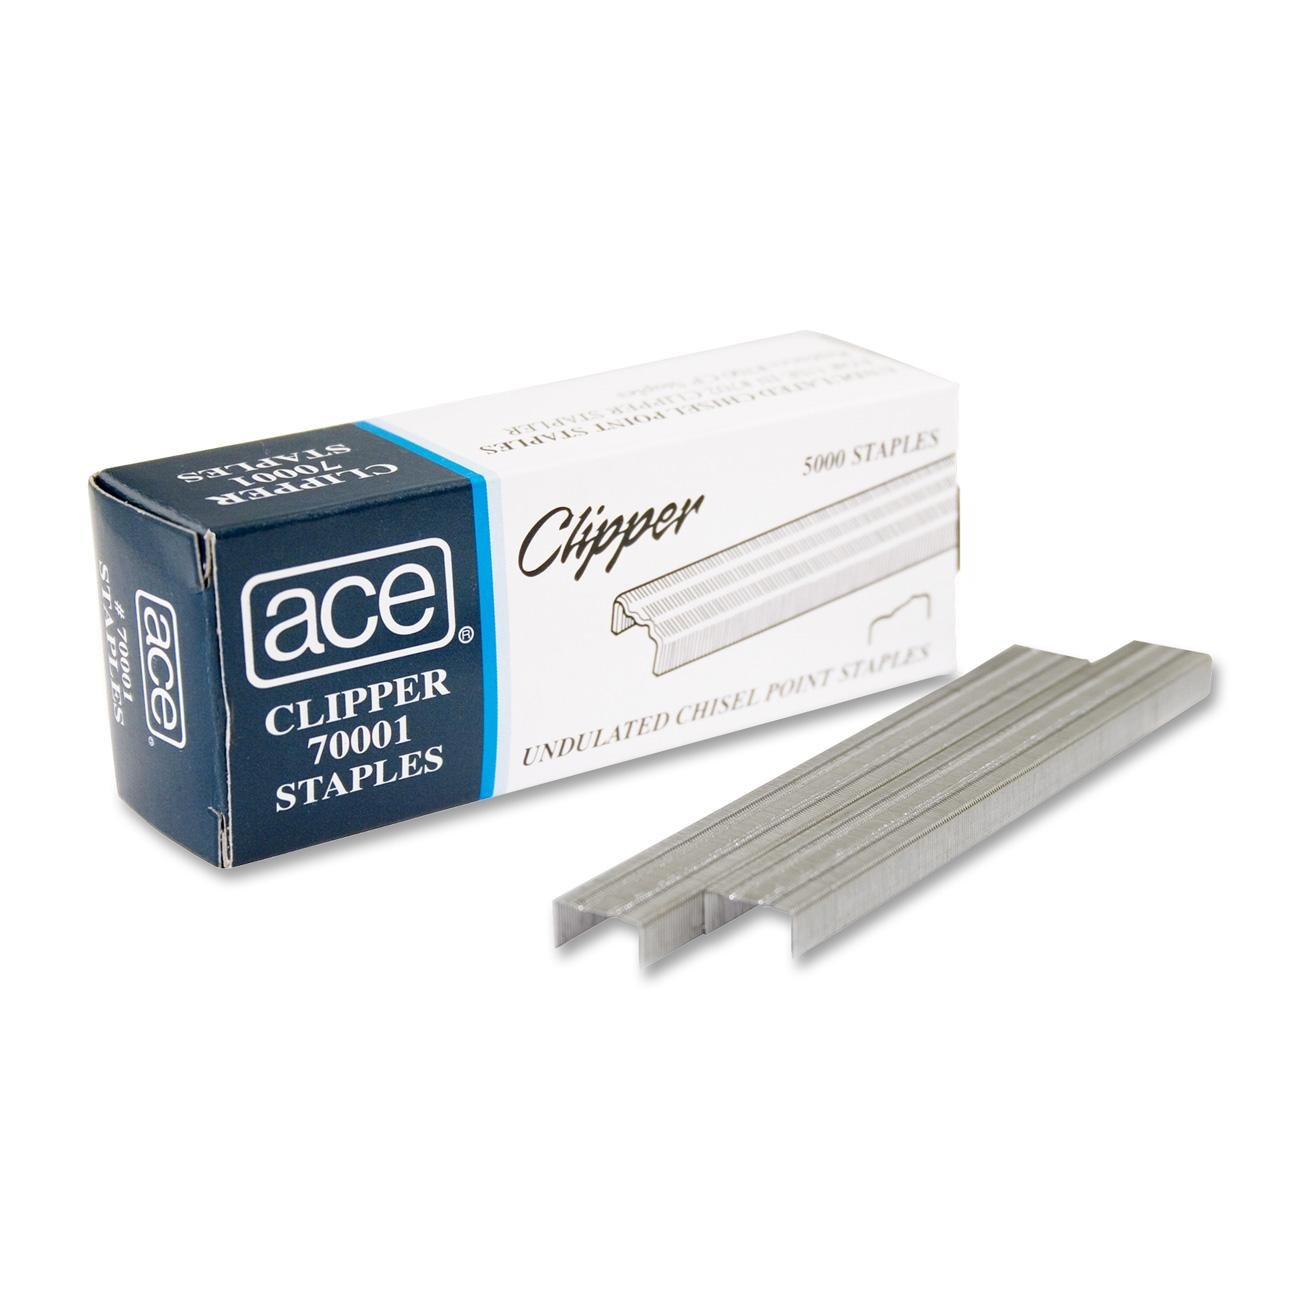 ACE-70001 Undulated Staples 1 Sleeve = 20 Boxes, 5000 staples per box